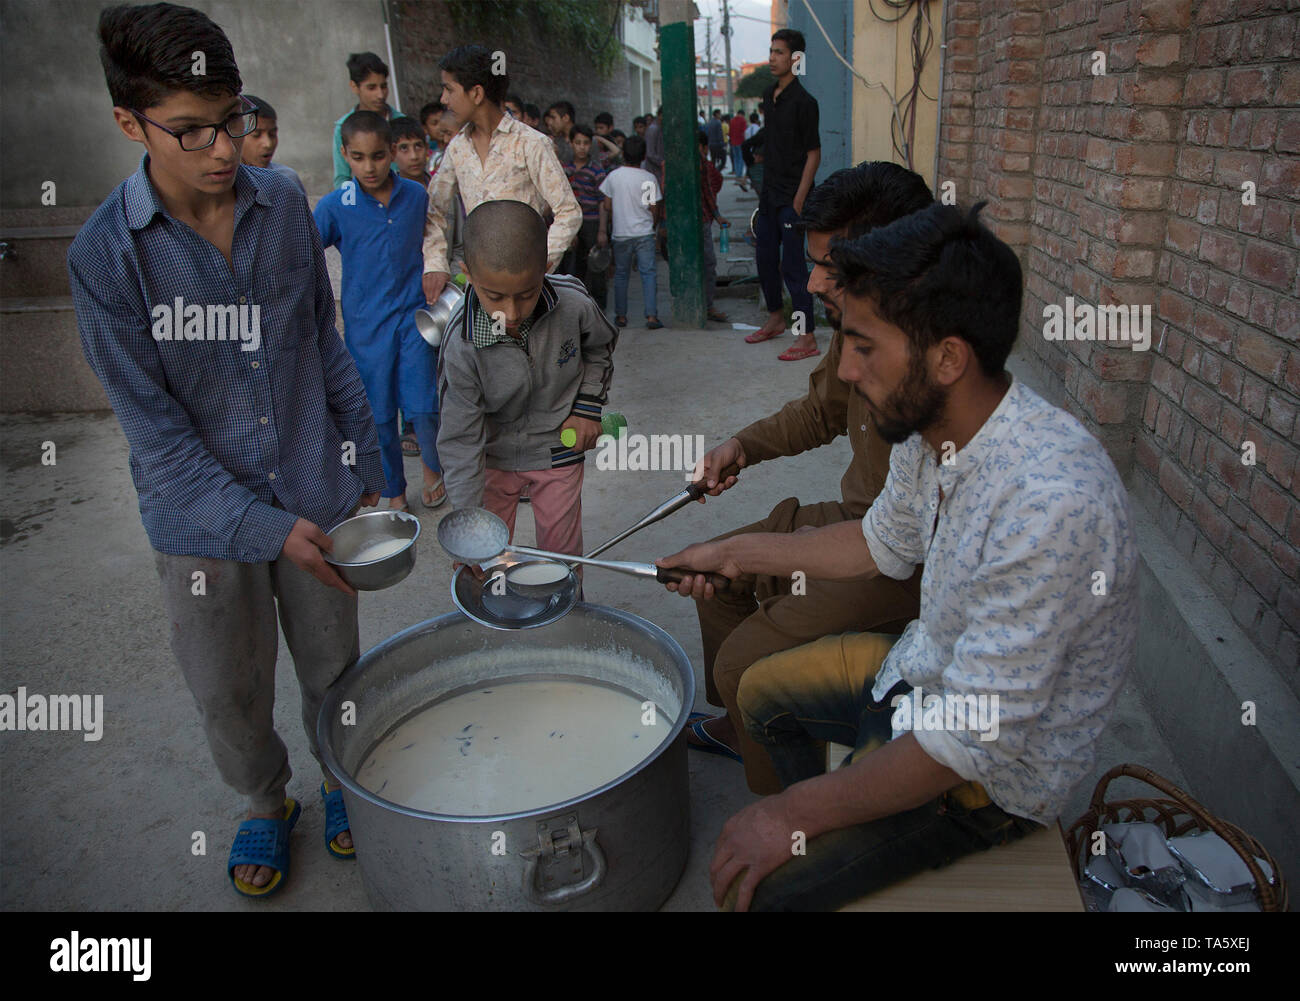 Srinagar, Indian-controlled Kashmir. 21st May, 2019. Kashmiri Muslim orphans get food for Iftar, or fast-breaking meal, at an orphanage when Muslims break their fast during the holy month of Ramadan in Srinagar, the summer capital of Indian-controlled Kashmir, May 21, 2019. Credit: Javed Dar/Xinhua/Alamy Live News - Stock Image